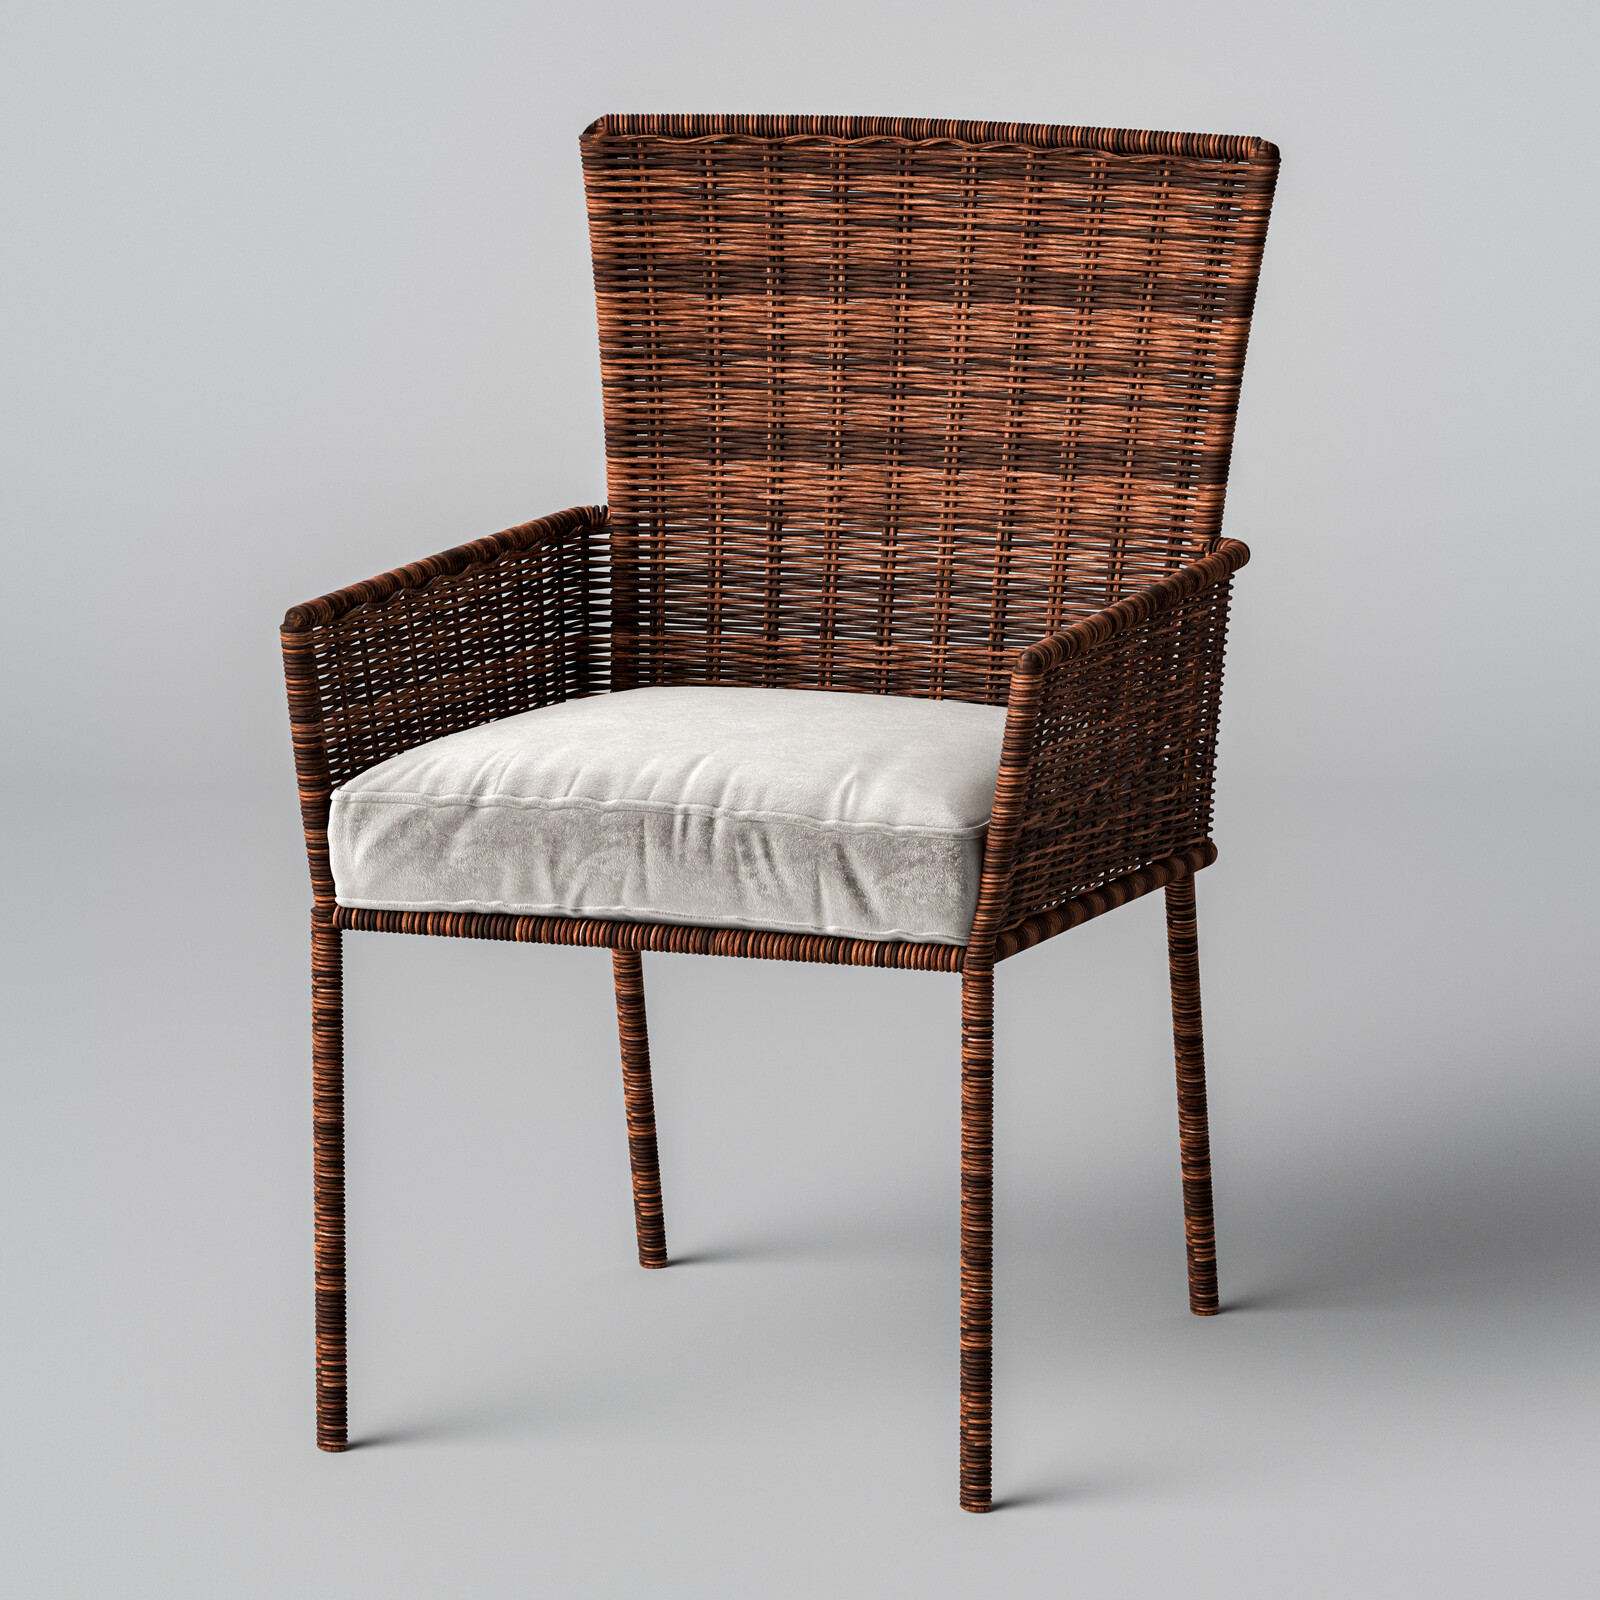 Wicker Chair